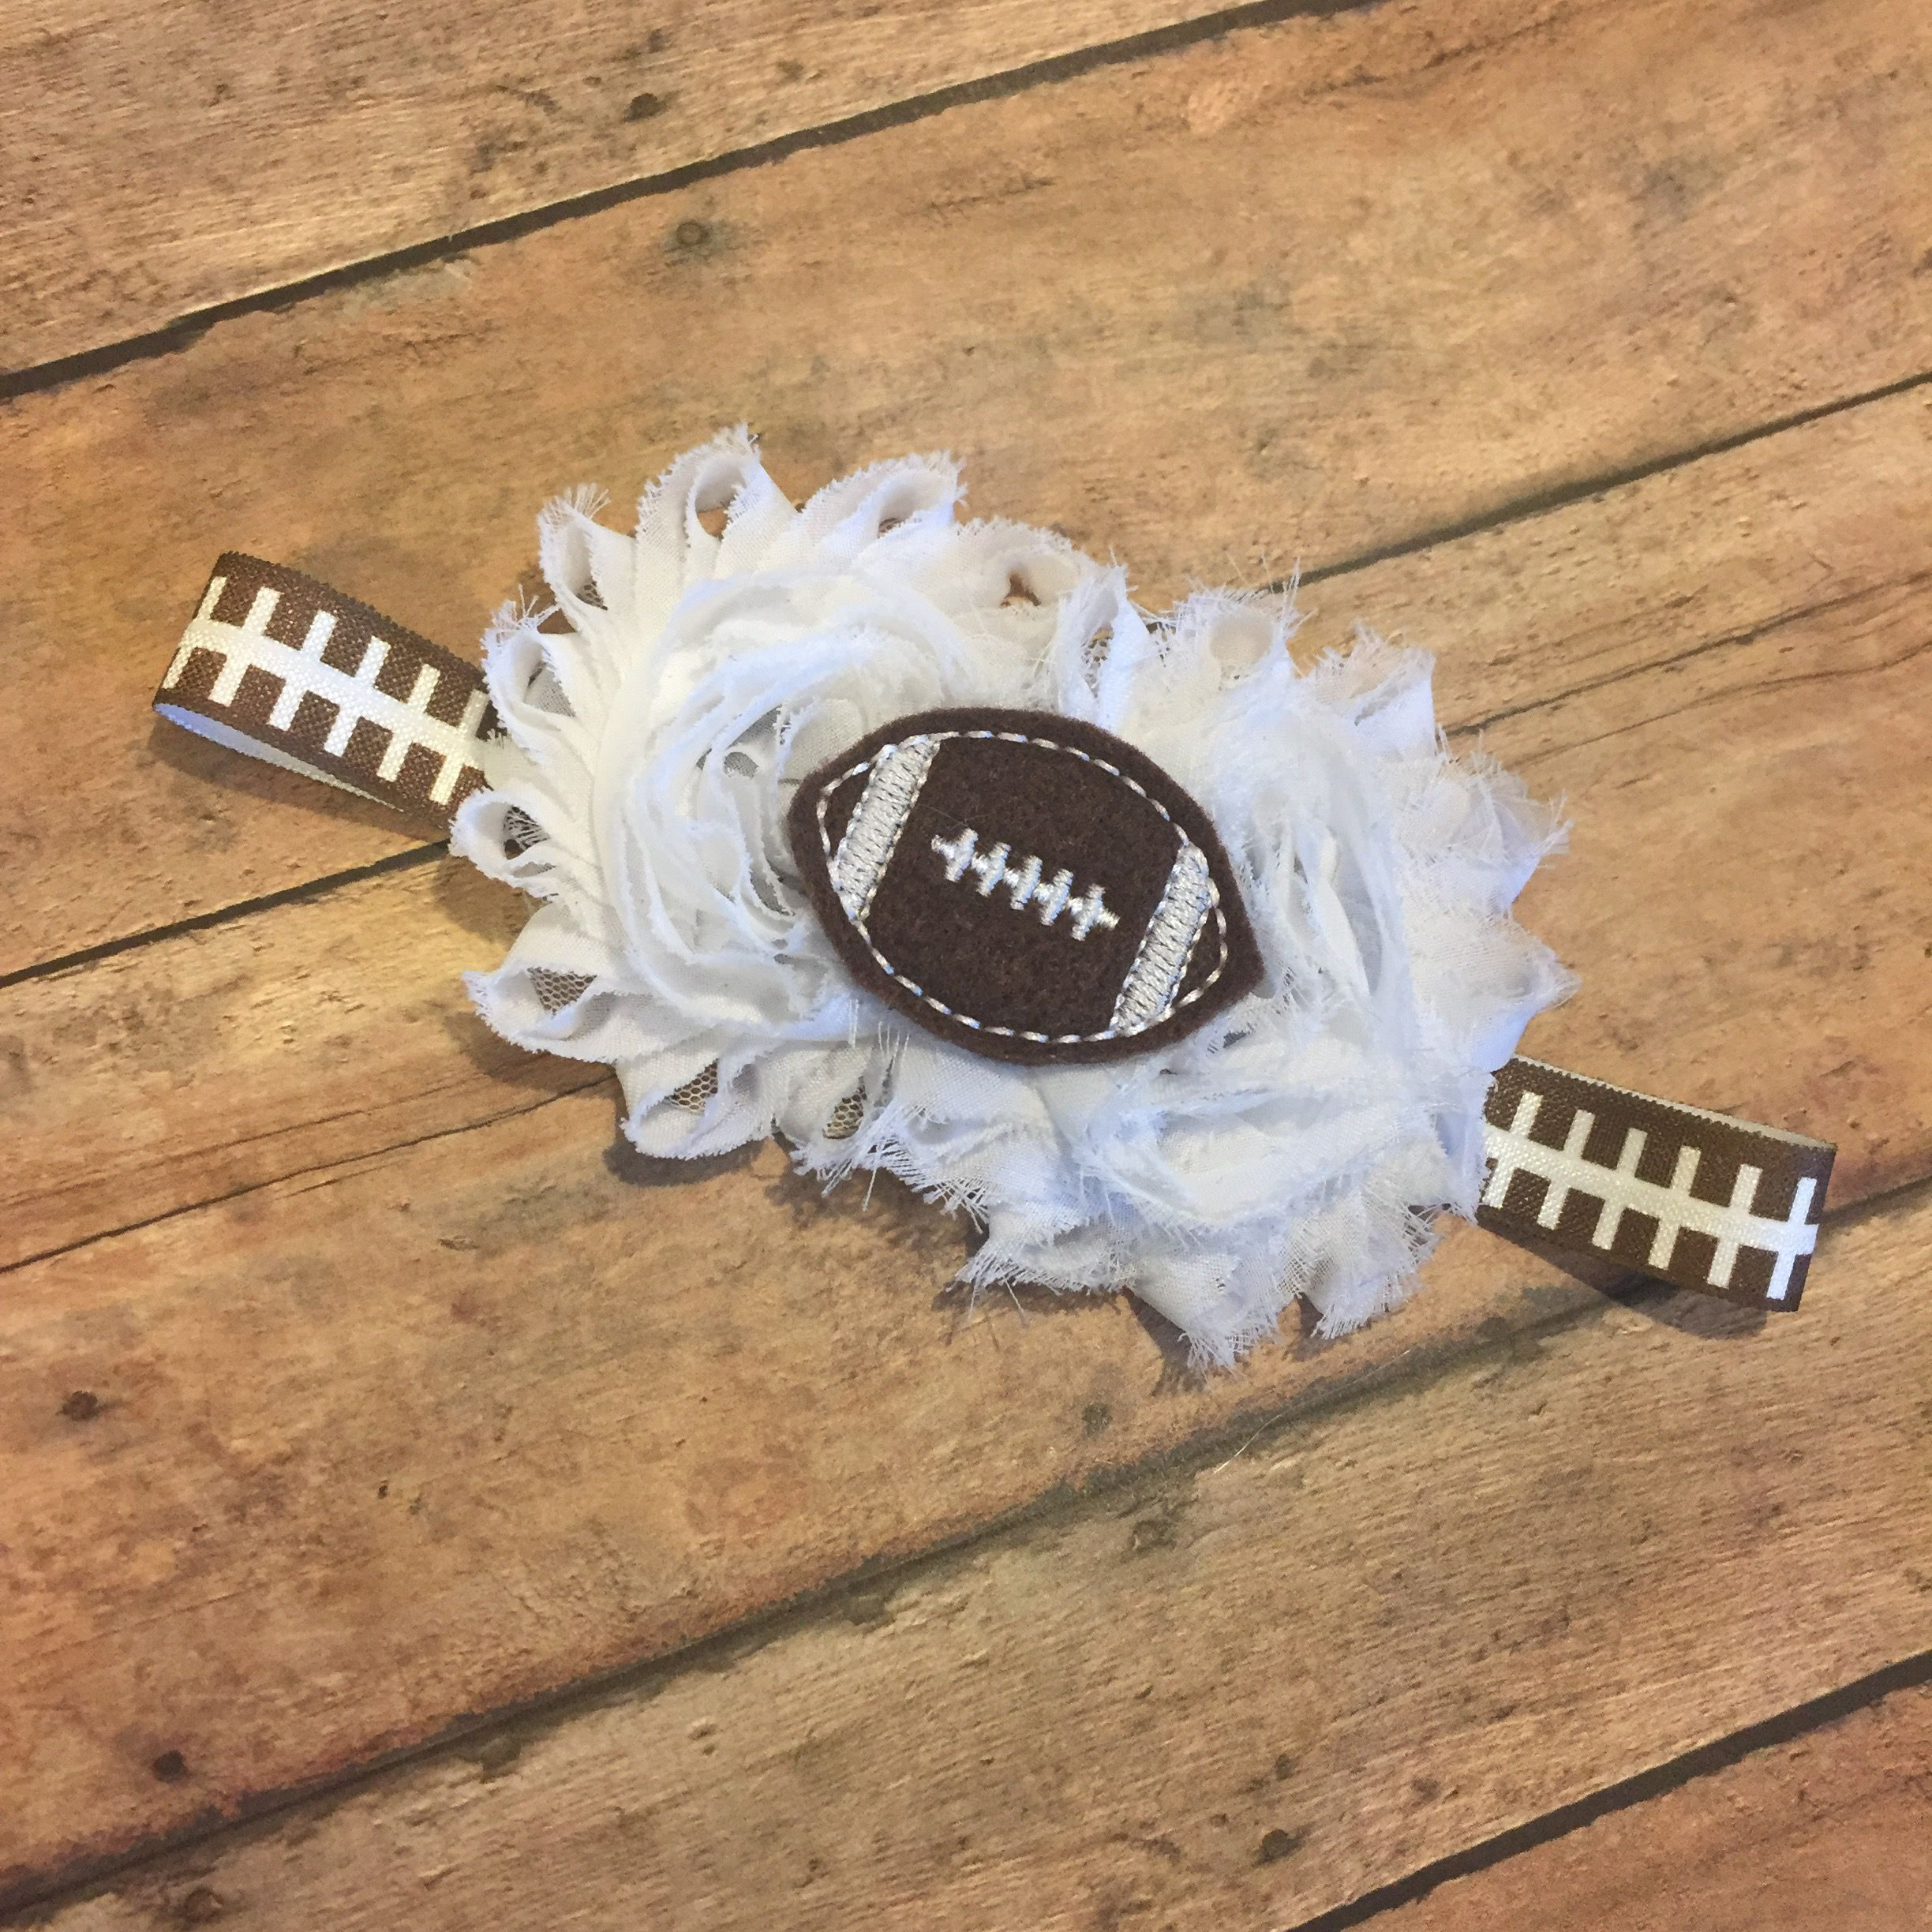 Some like to display their team colors all the way! Some like to be neutral and go basic football which this headband works perfectly for!! #bowtifulblessings #bbgifts #etsy #etsyseller #etsyshop #etsyusa #customorder #headband #football #custom #customize #babygirl #babyfashion #fall #fallyall #fallhairbow #fallfashion #smallbusinesslove #smallshop #entrepreneur #handmade #fan #sports